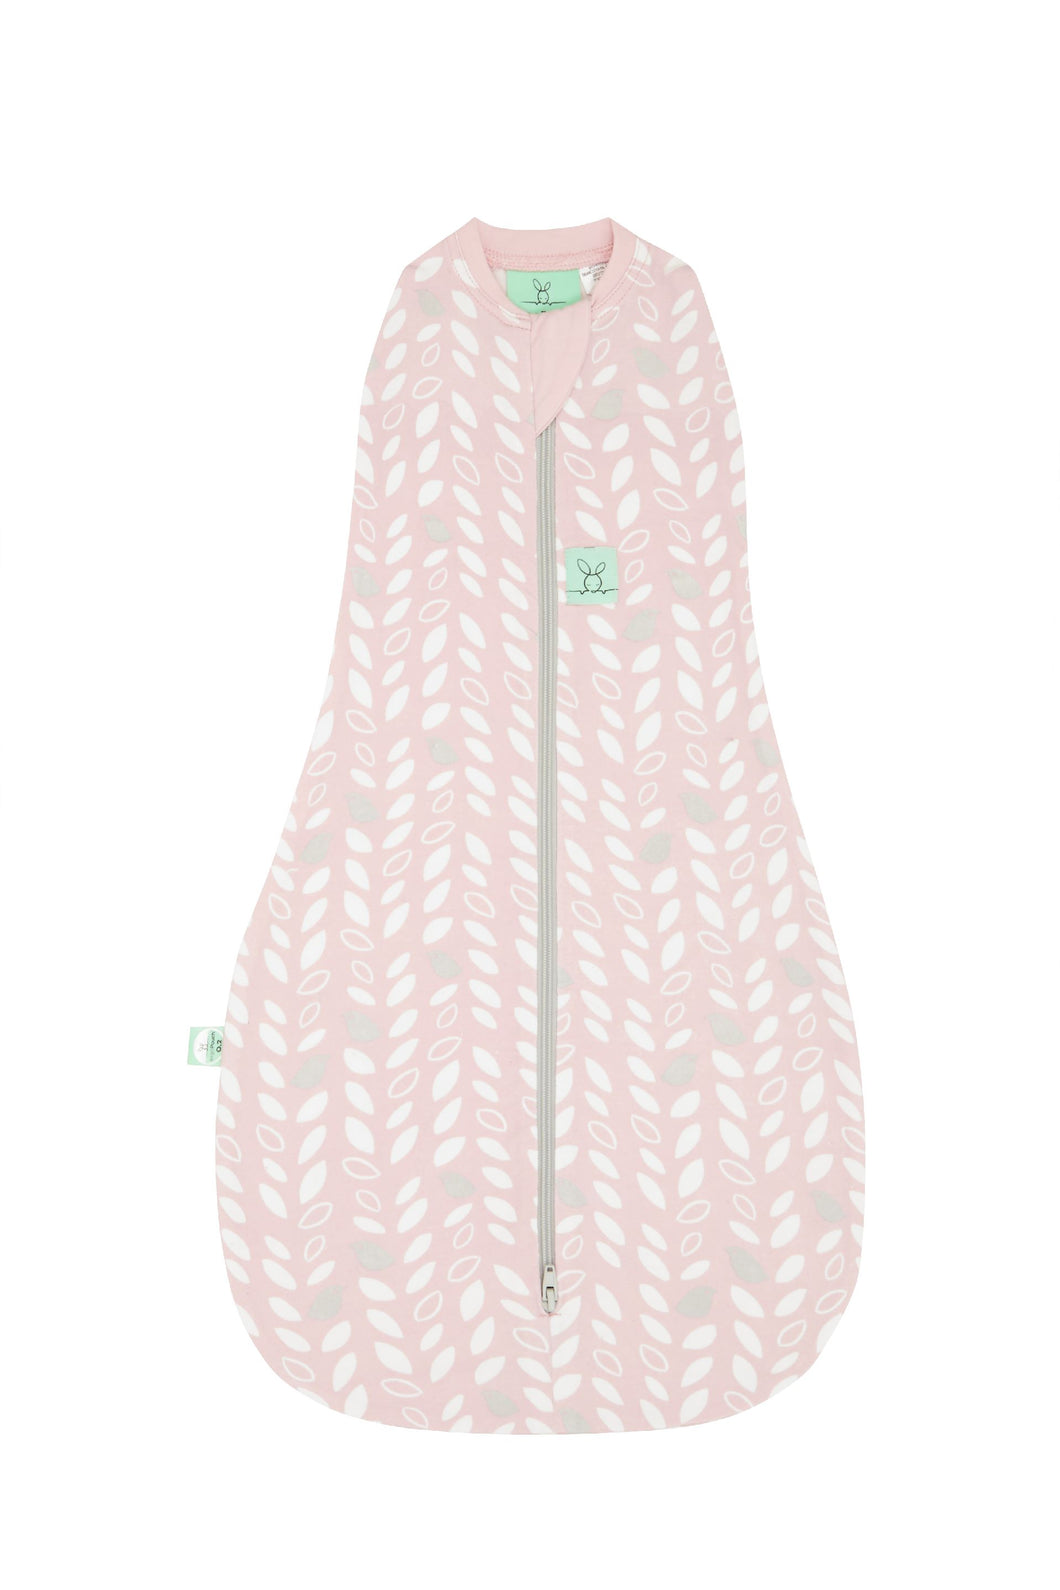 ErgoCocoon Swaddle Bag - Spring Leaves